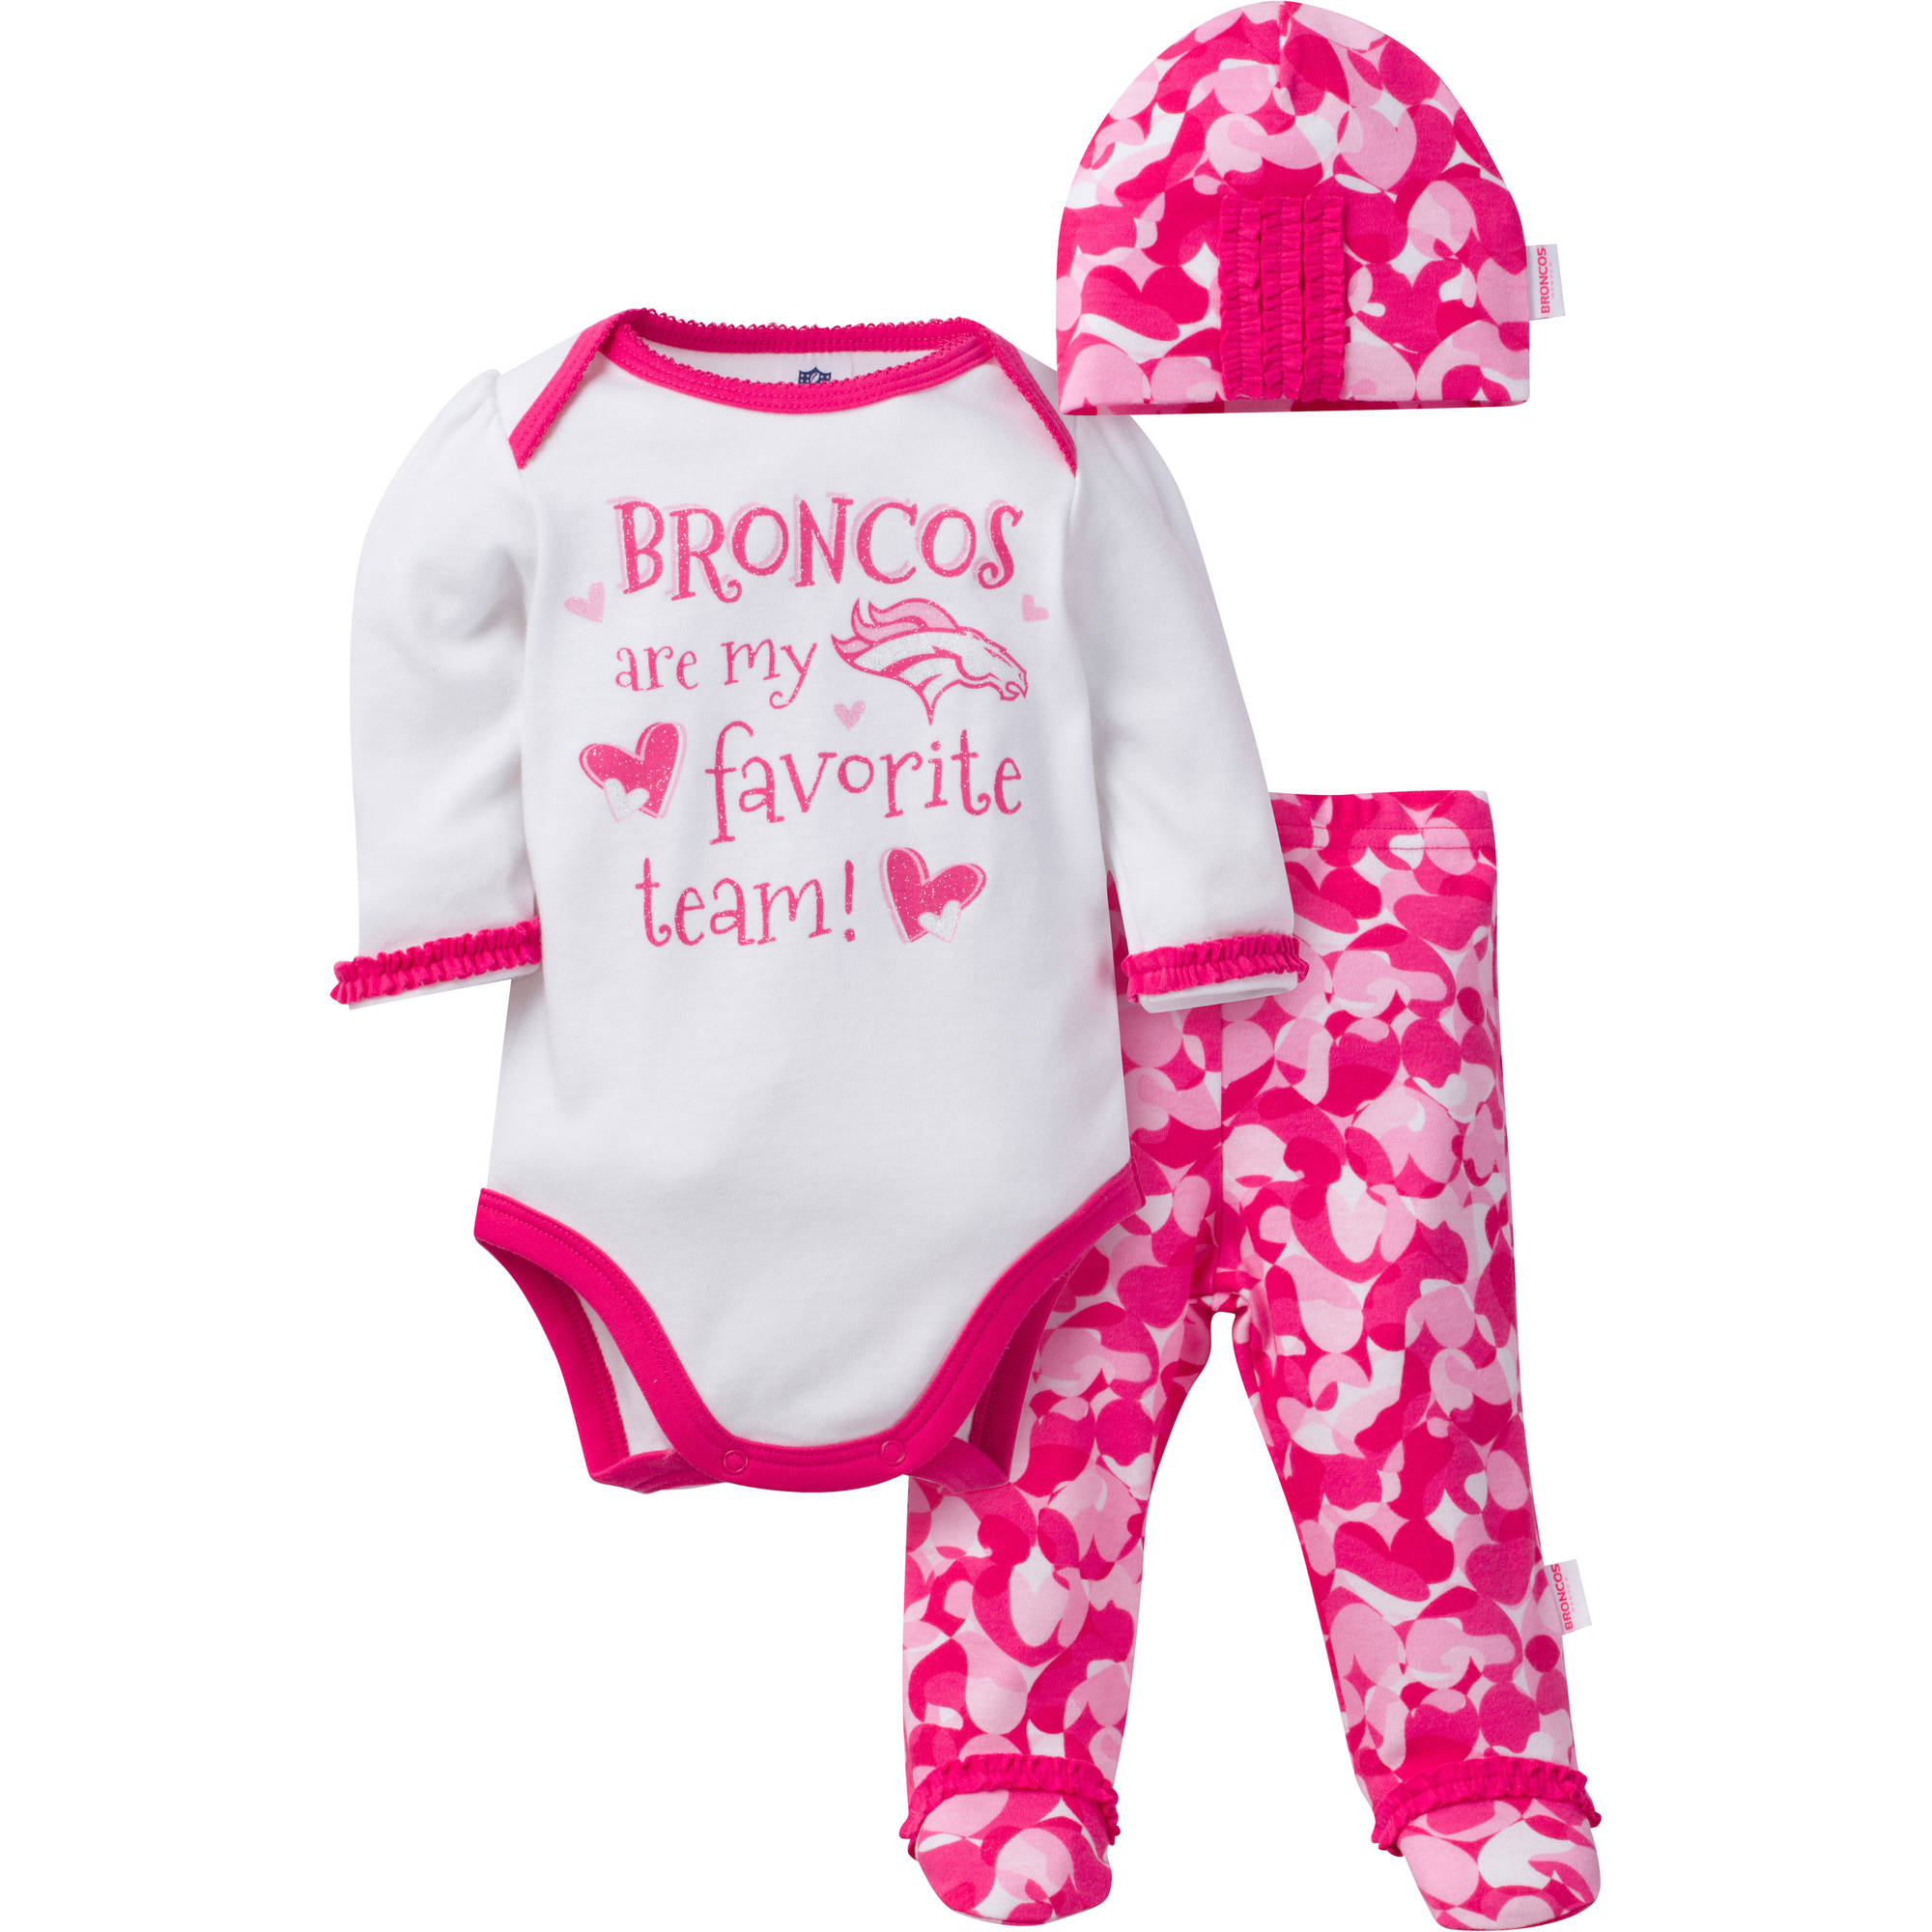 NFL Denver Broncos Baby Girls Bodysuit, Pant and Cap Outfit Set, 3-Piece